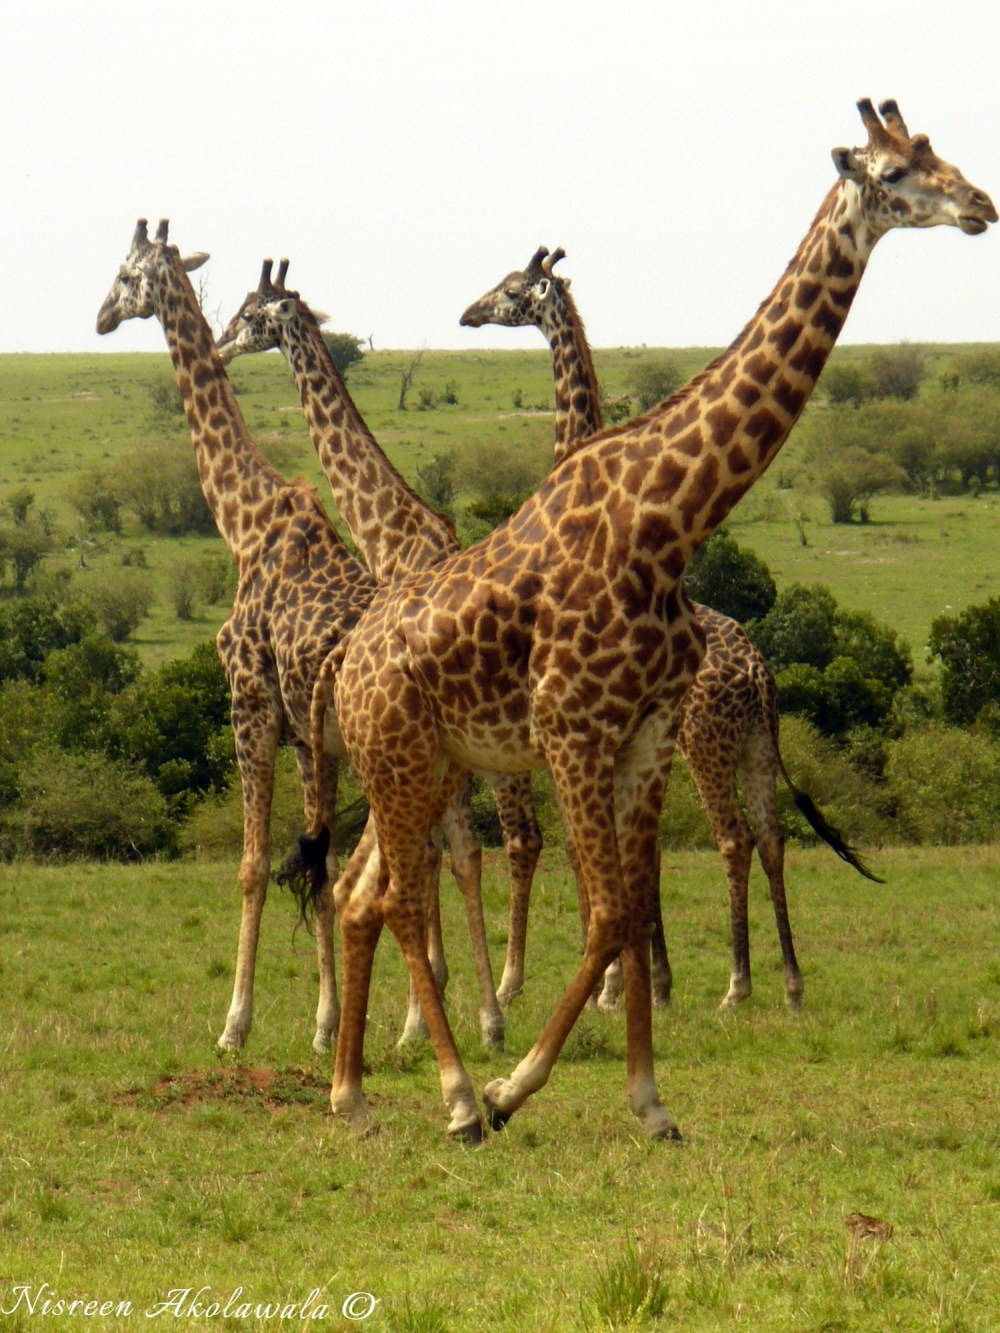 Giraffe family in Masai Mara